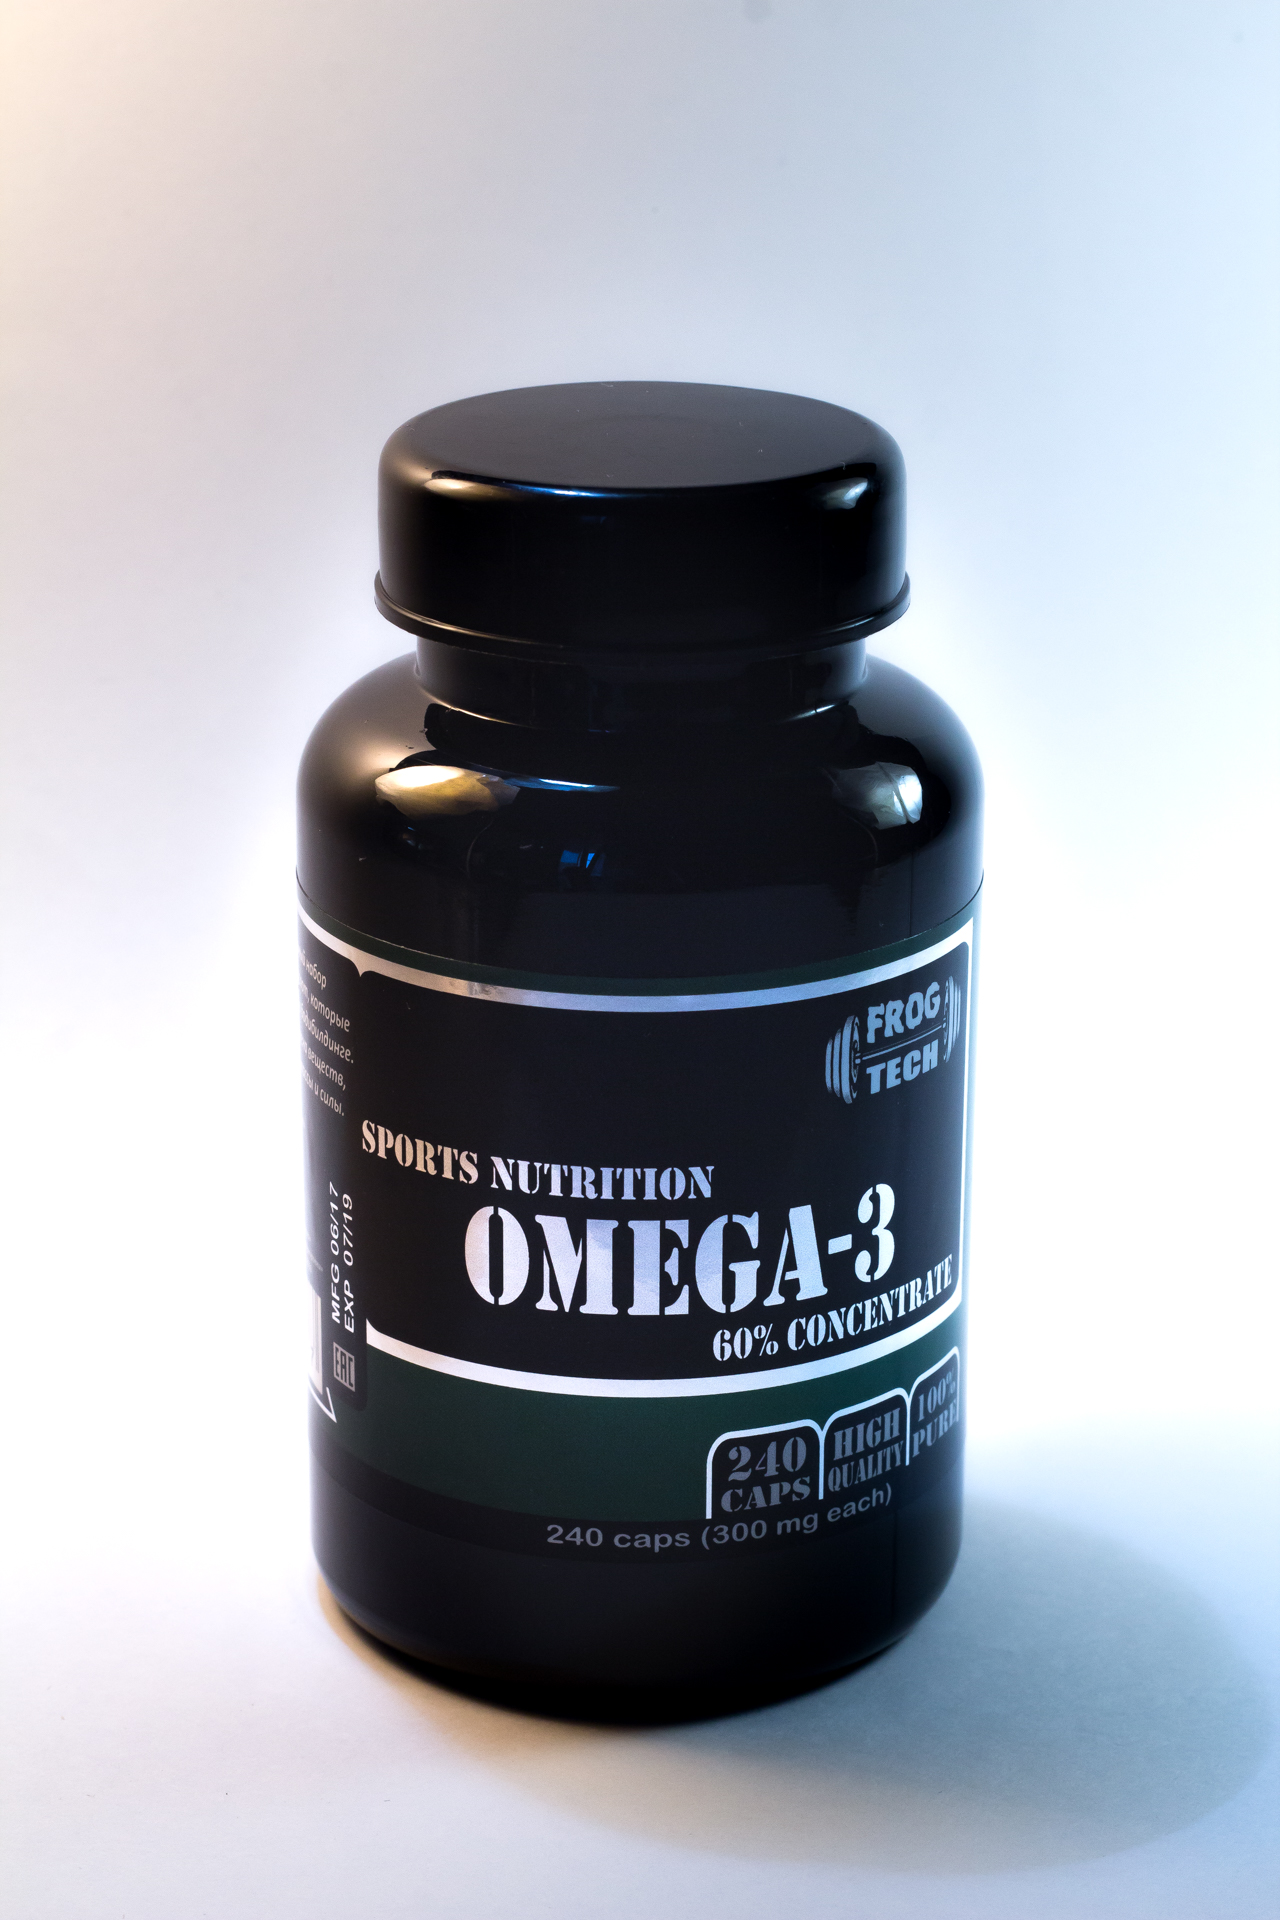 Omega-3 60% Concentrate